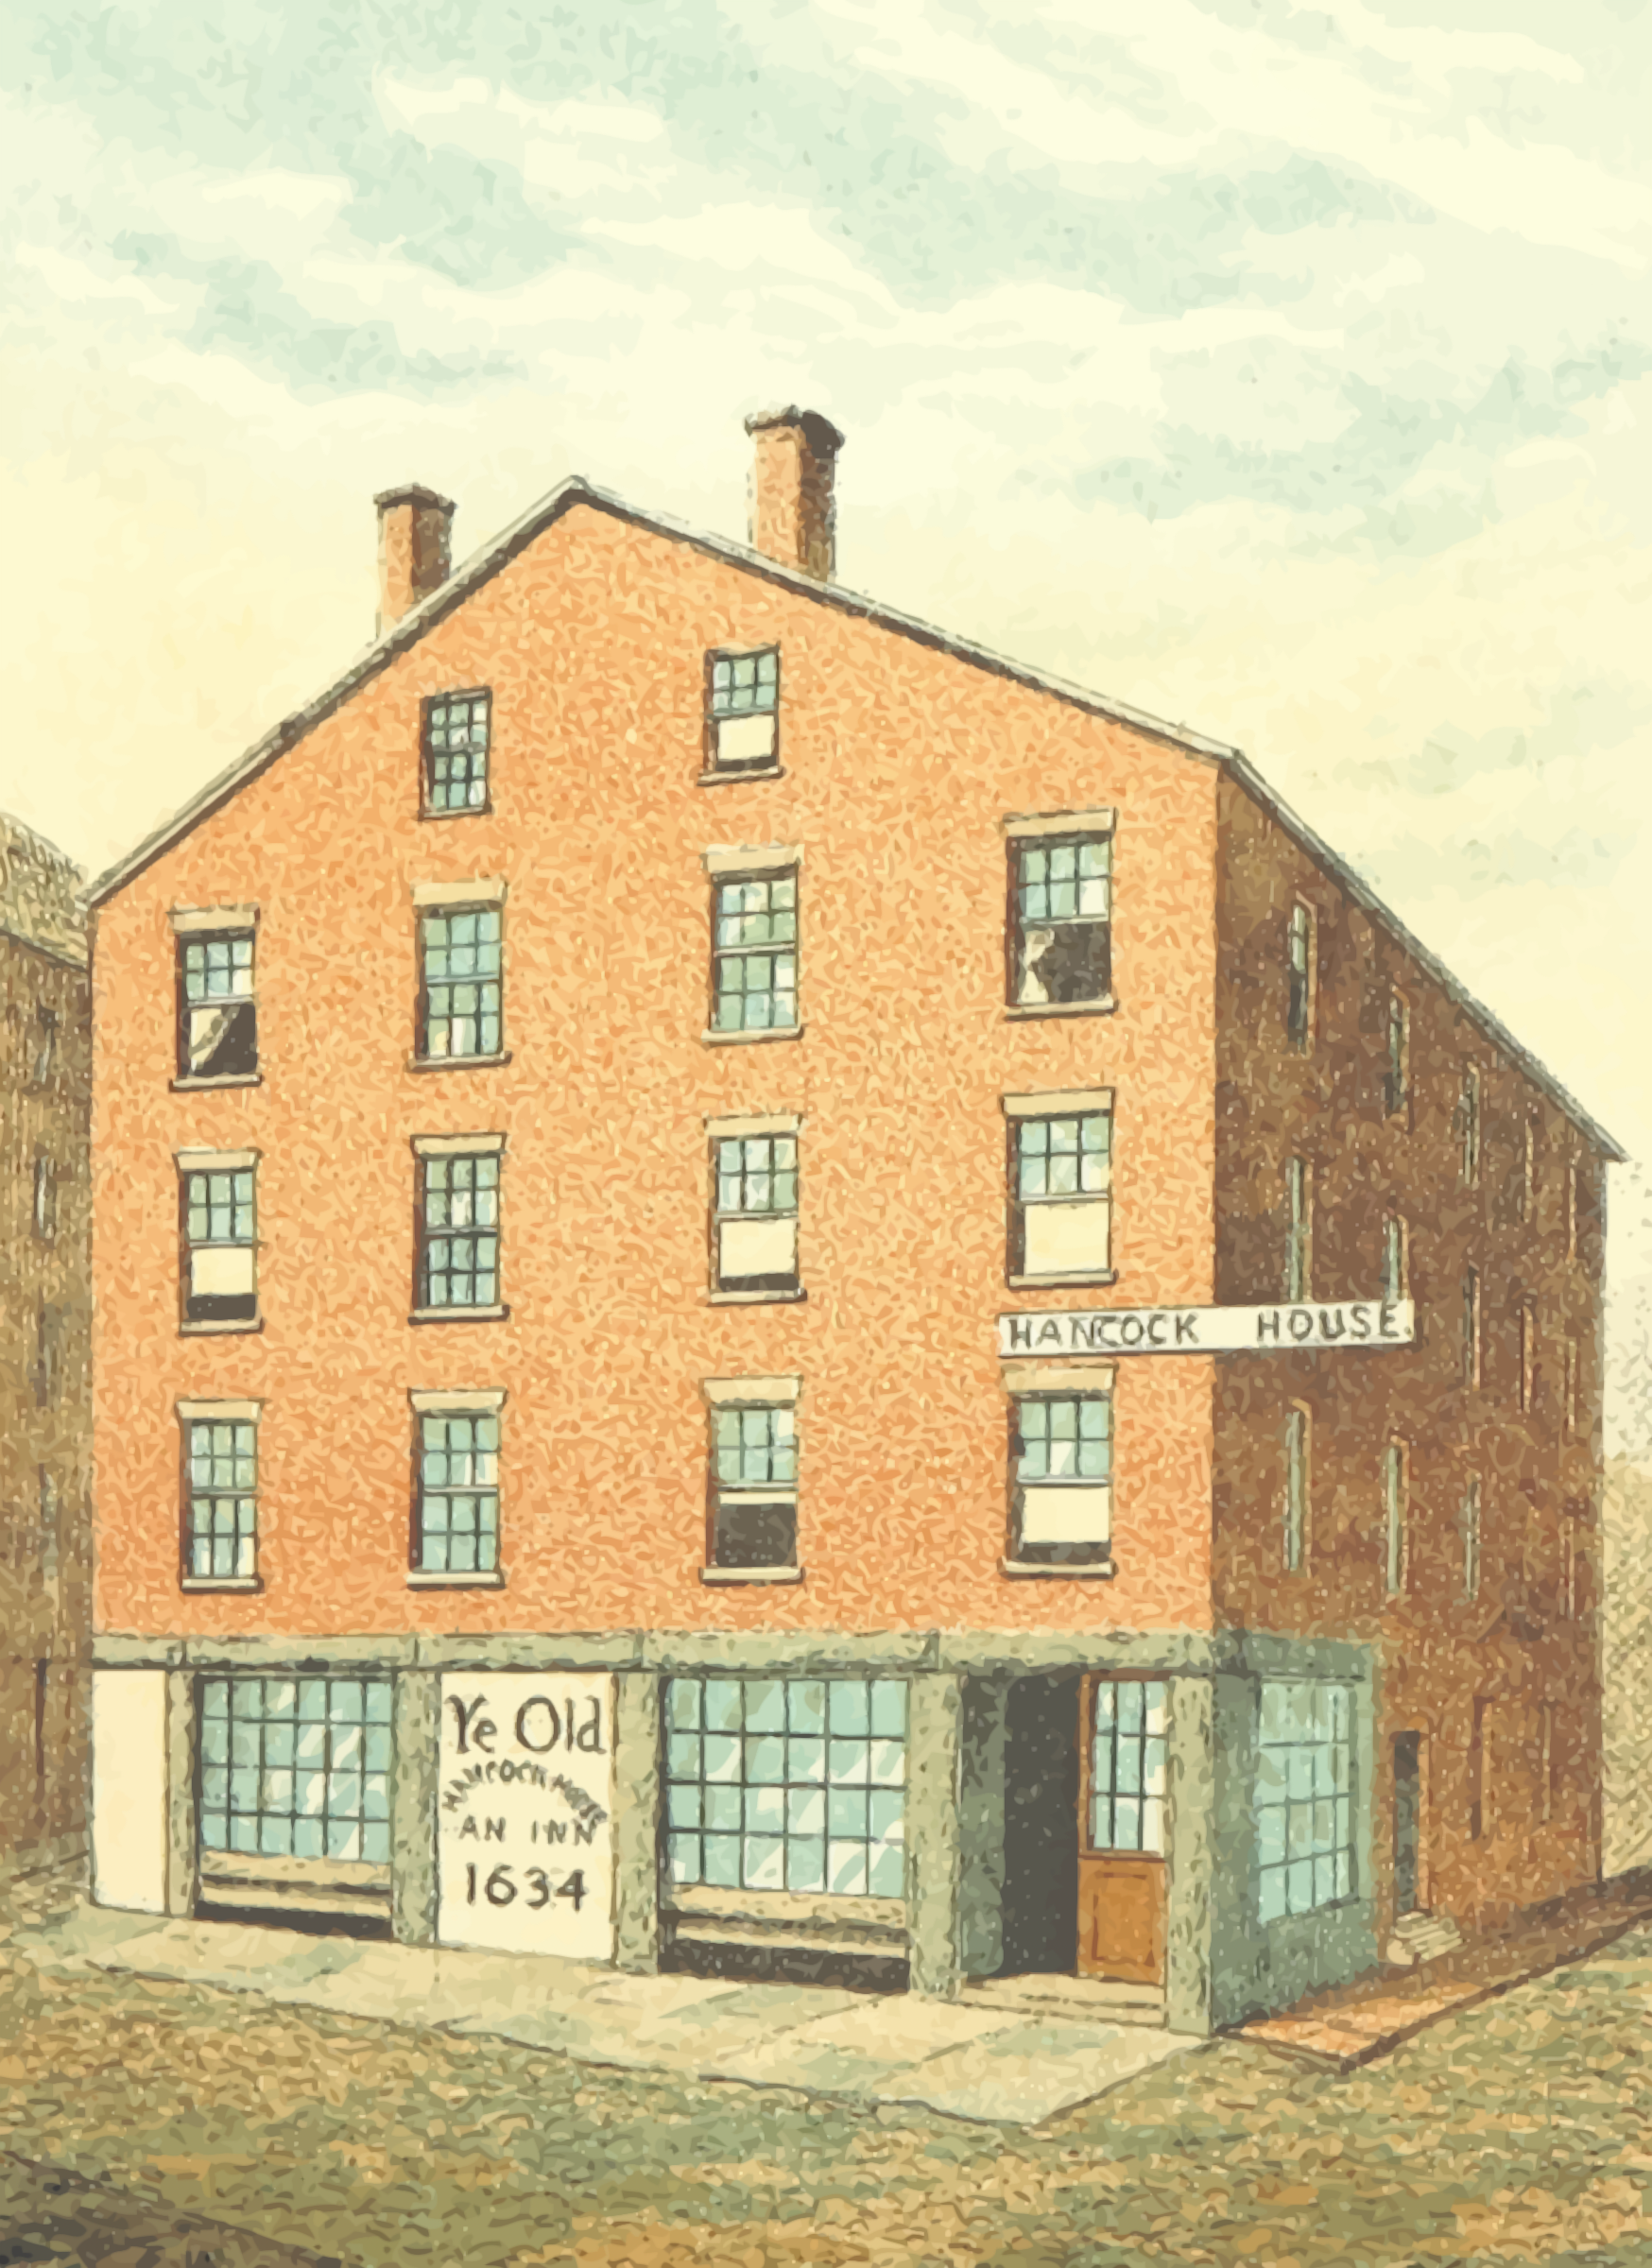 Hancock Tavern by Firkin